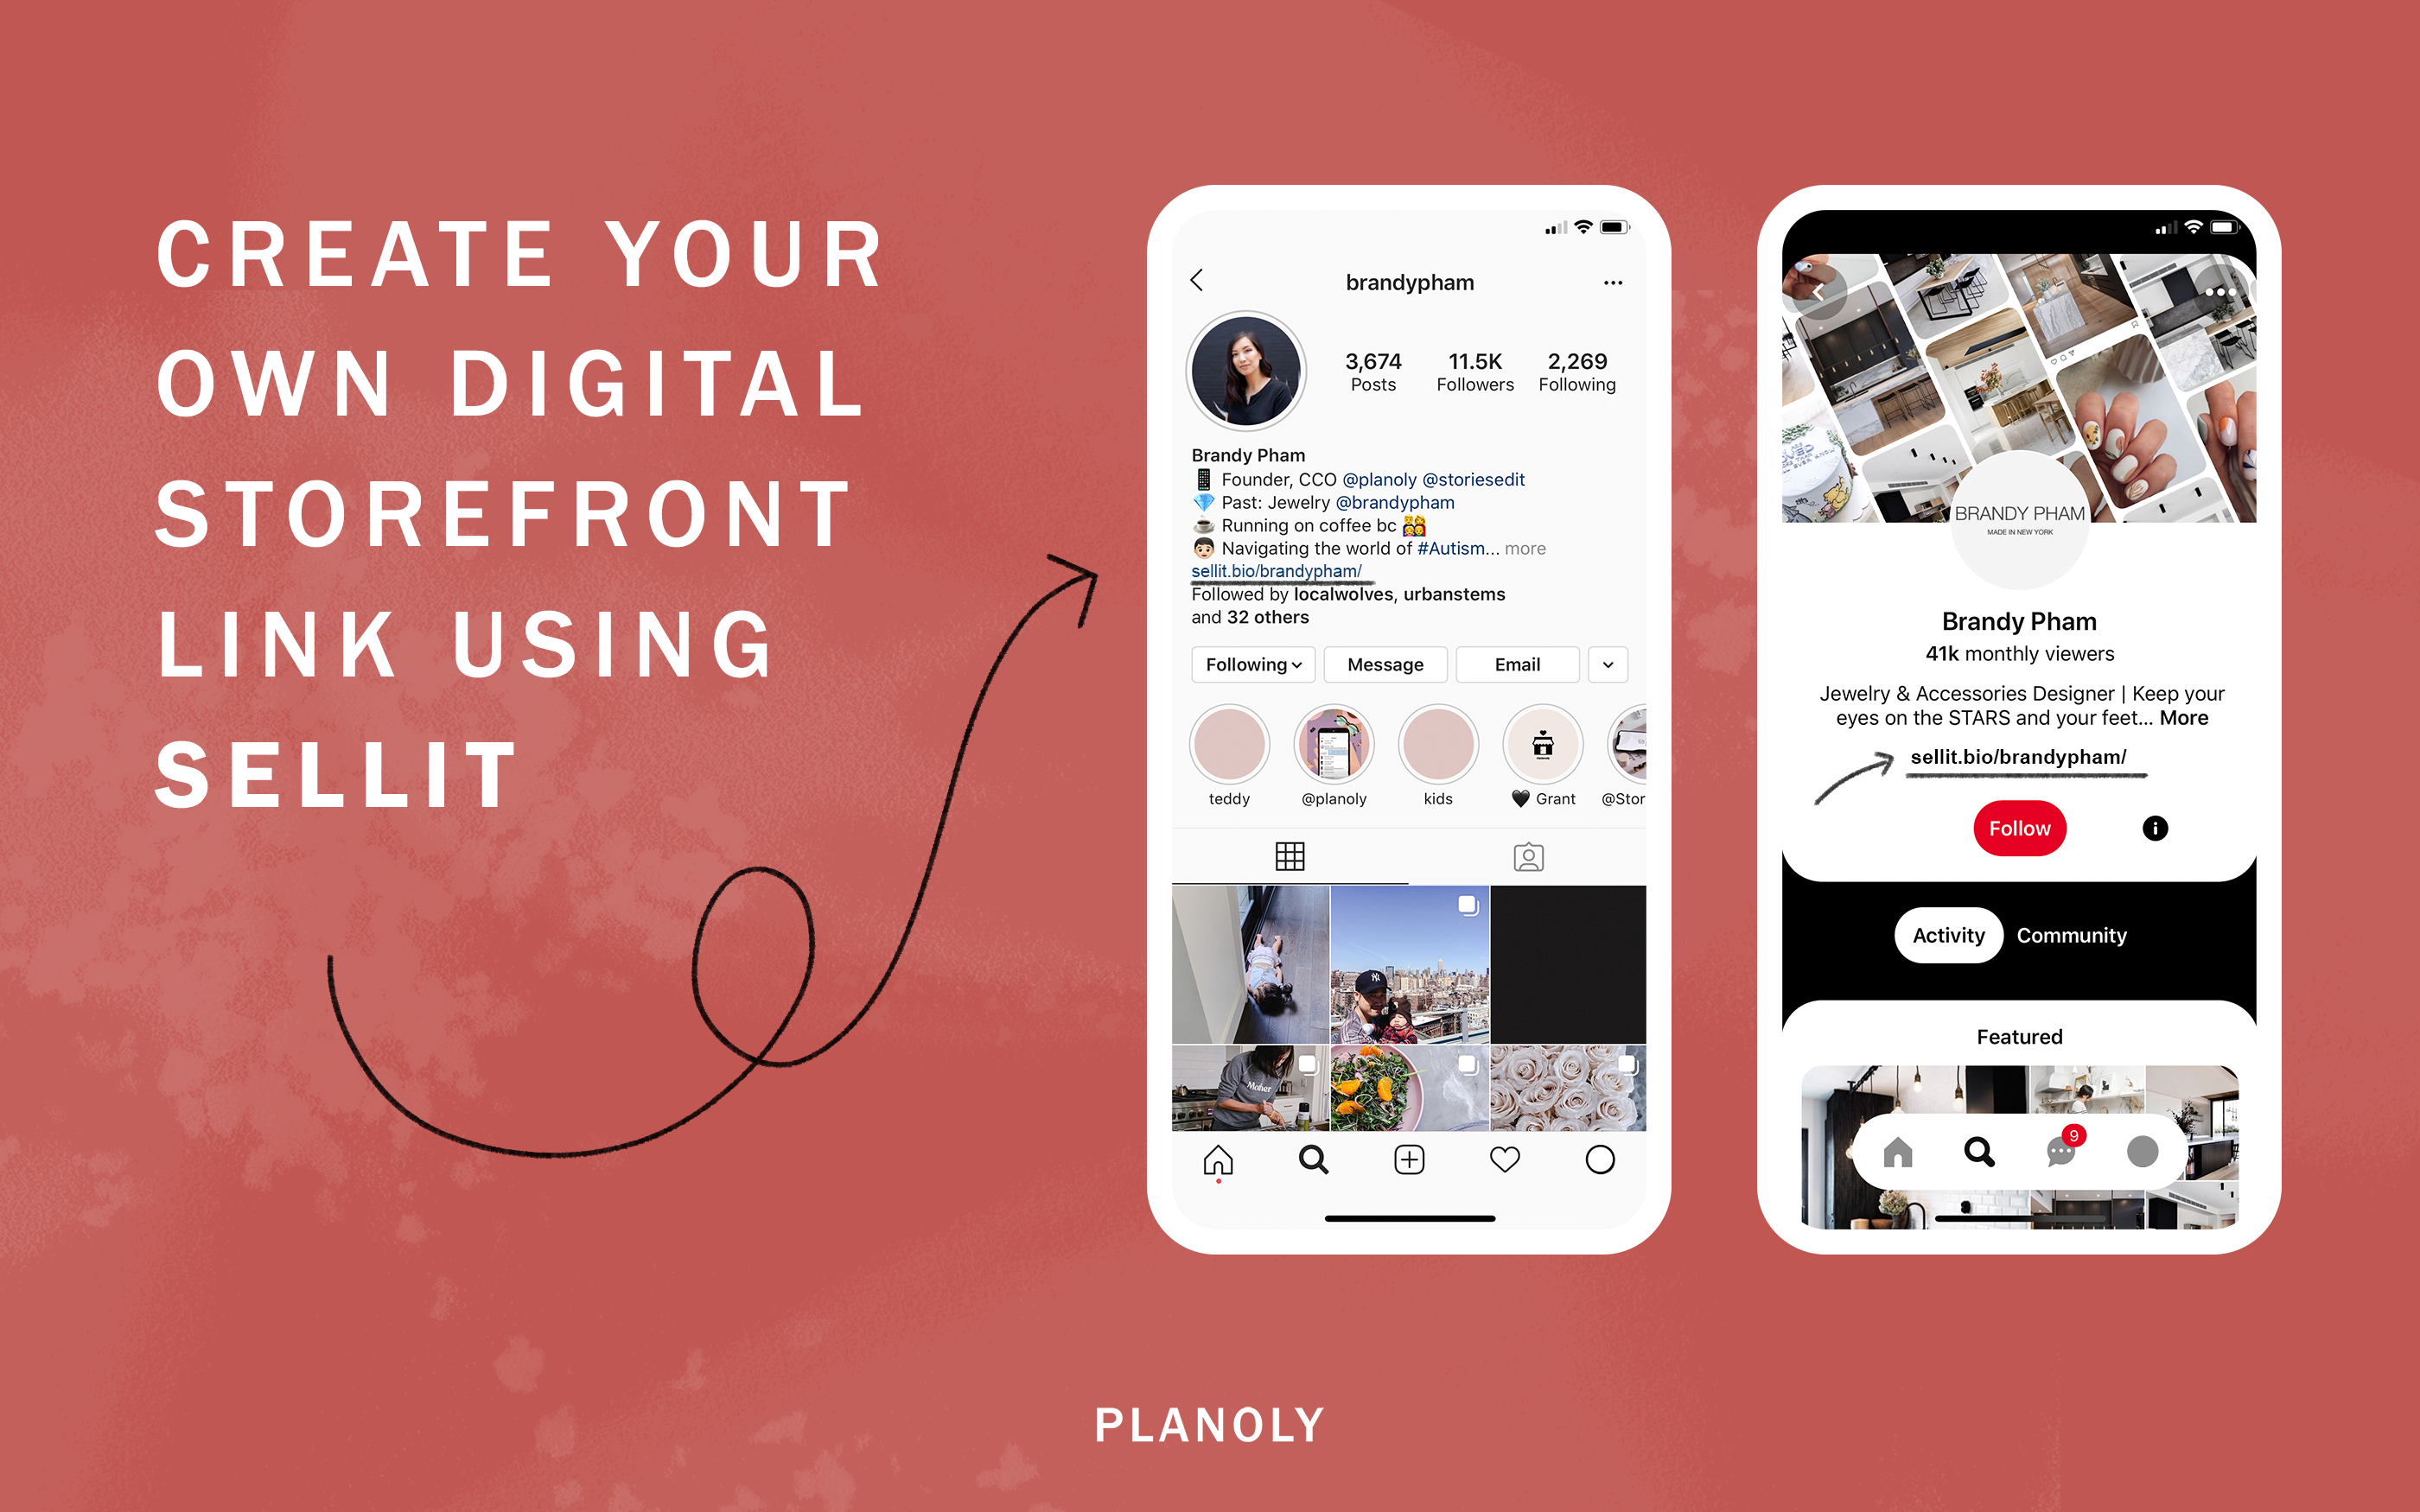 PLANOLY - Blog Post - Market Your Online Store - Image 5